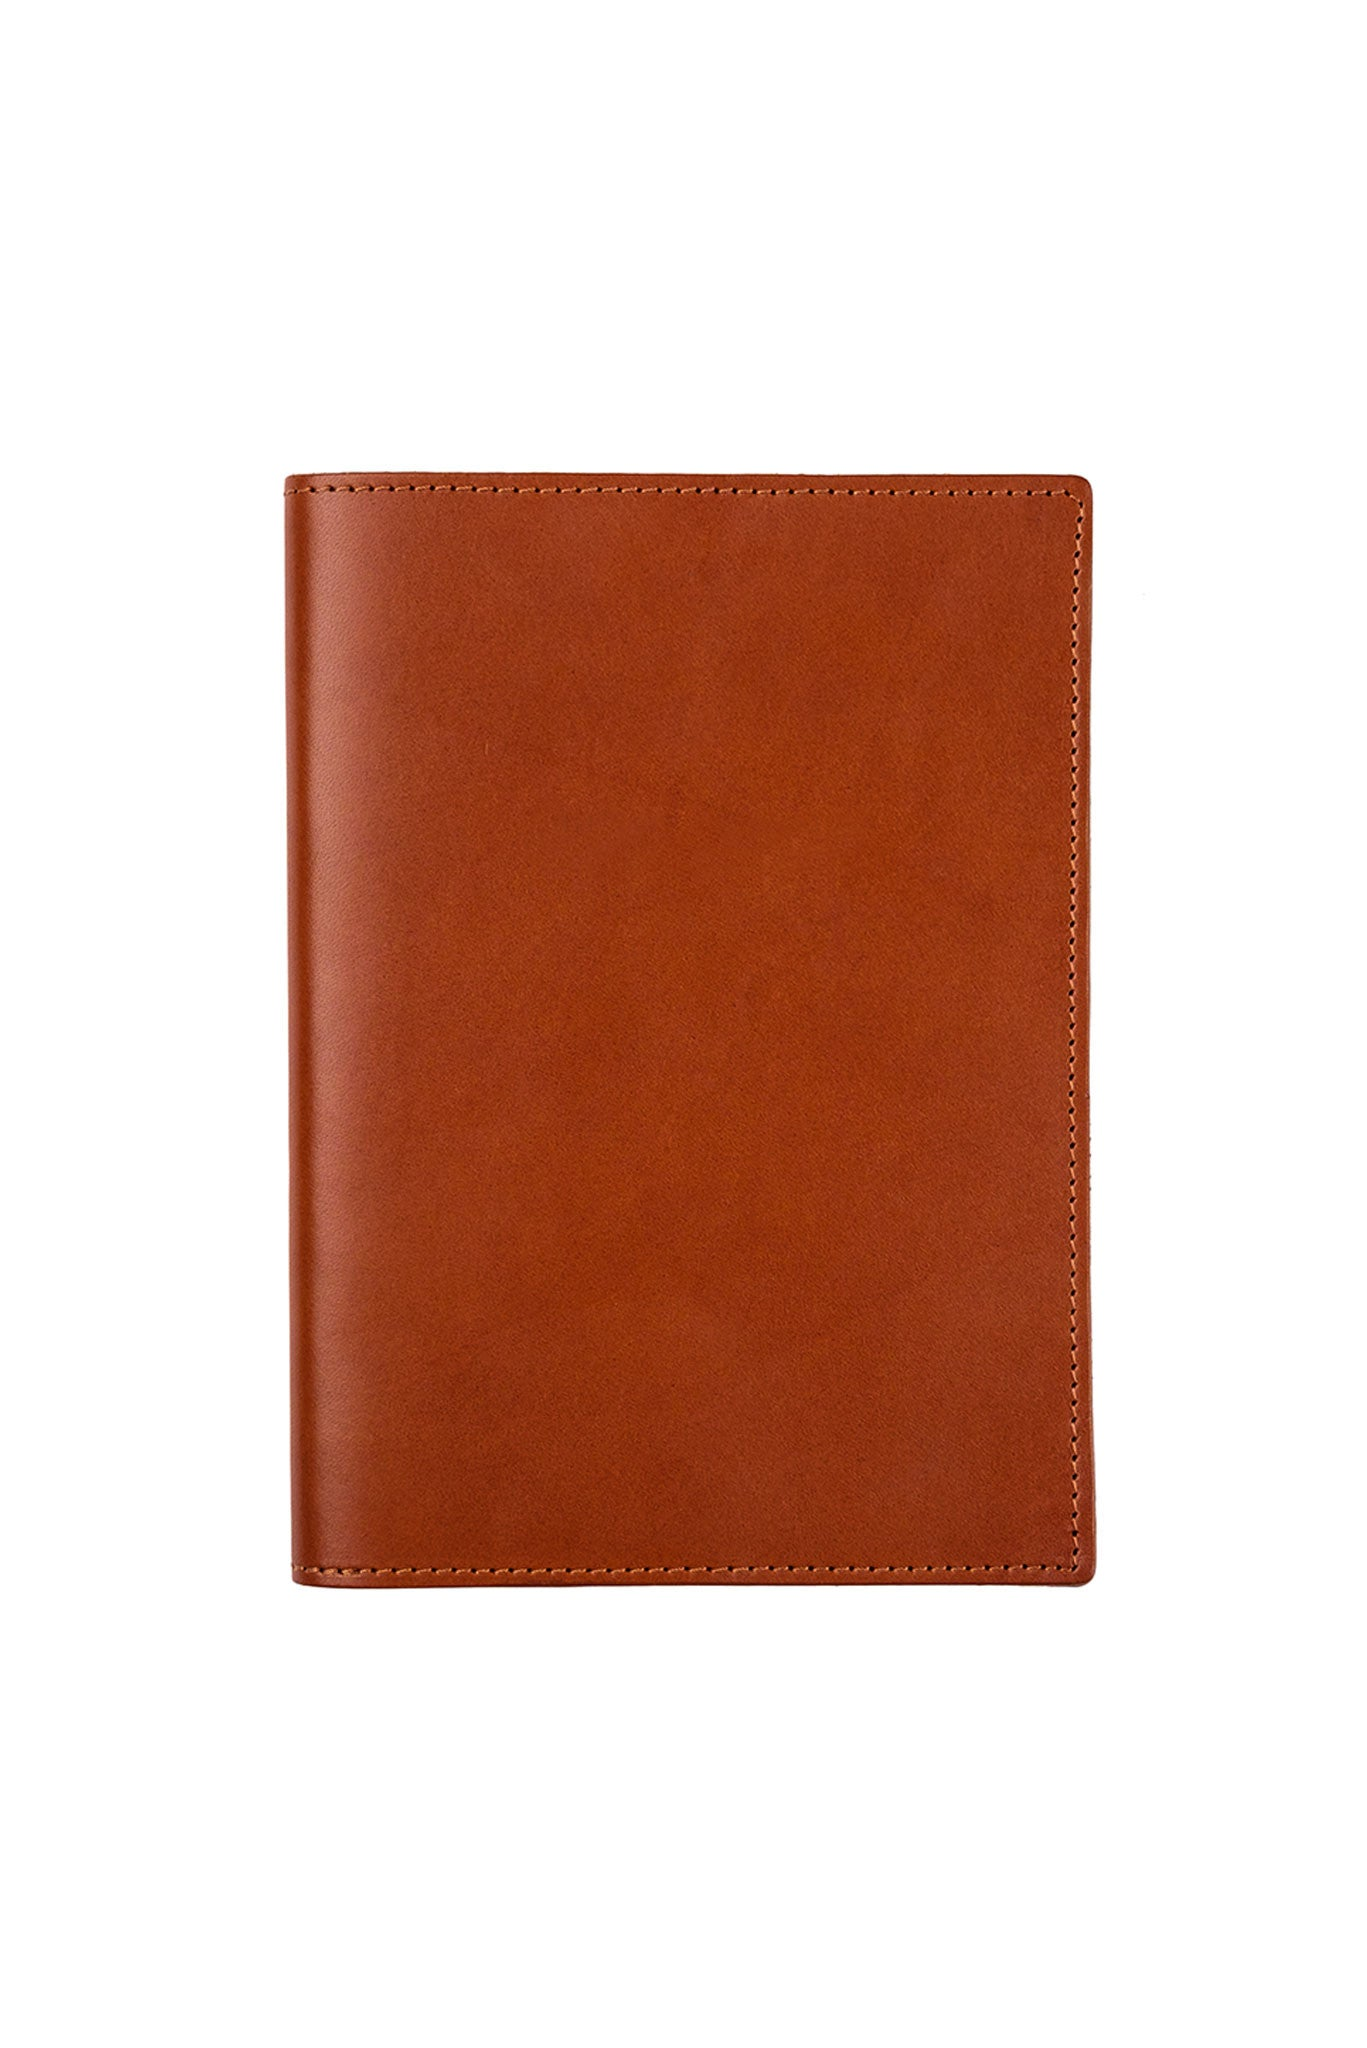 FOTO | Cognac Leather Journal for him - refillable genuine leather journal cover can be personalized with gold foil initials, a monogram or business logo making it the perfect personalized gift.